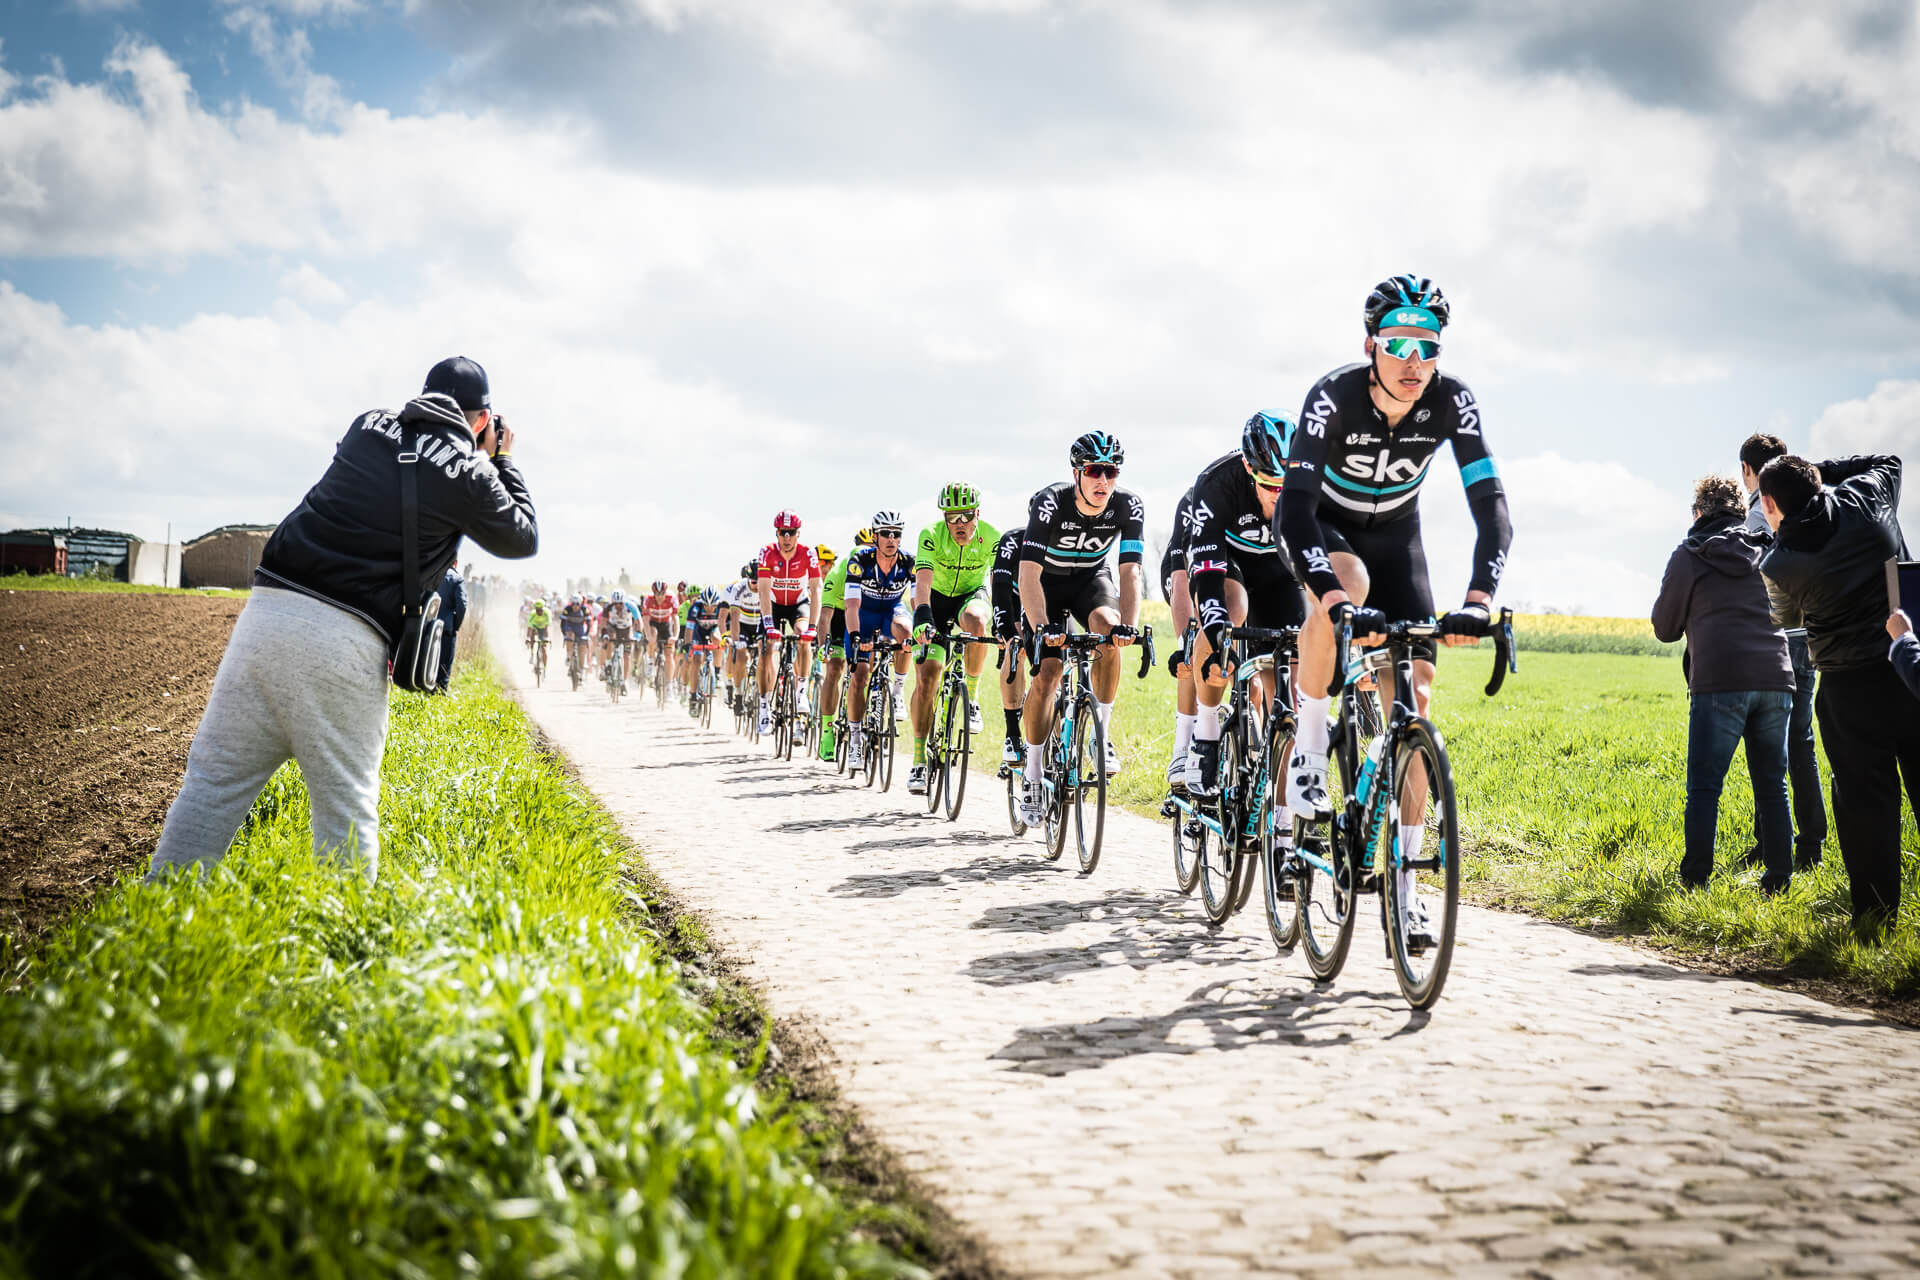 Team Sky Paris-Roubaix 2016